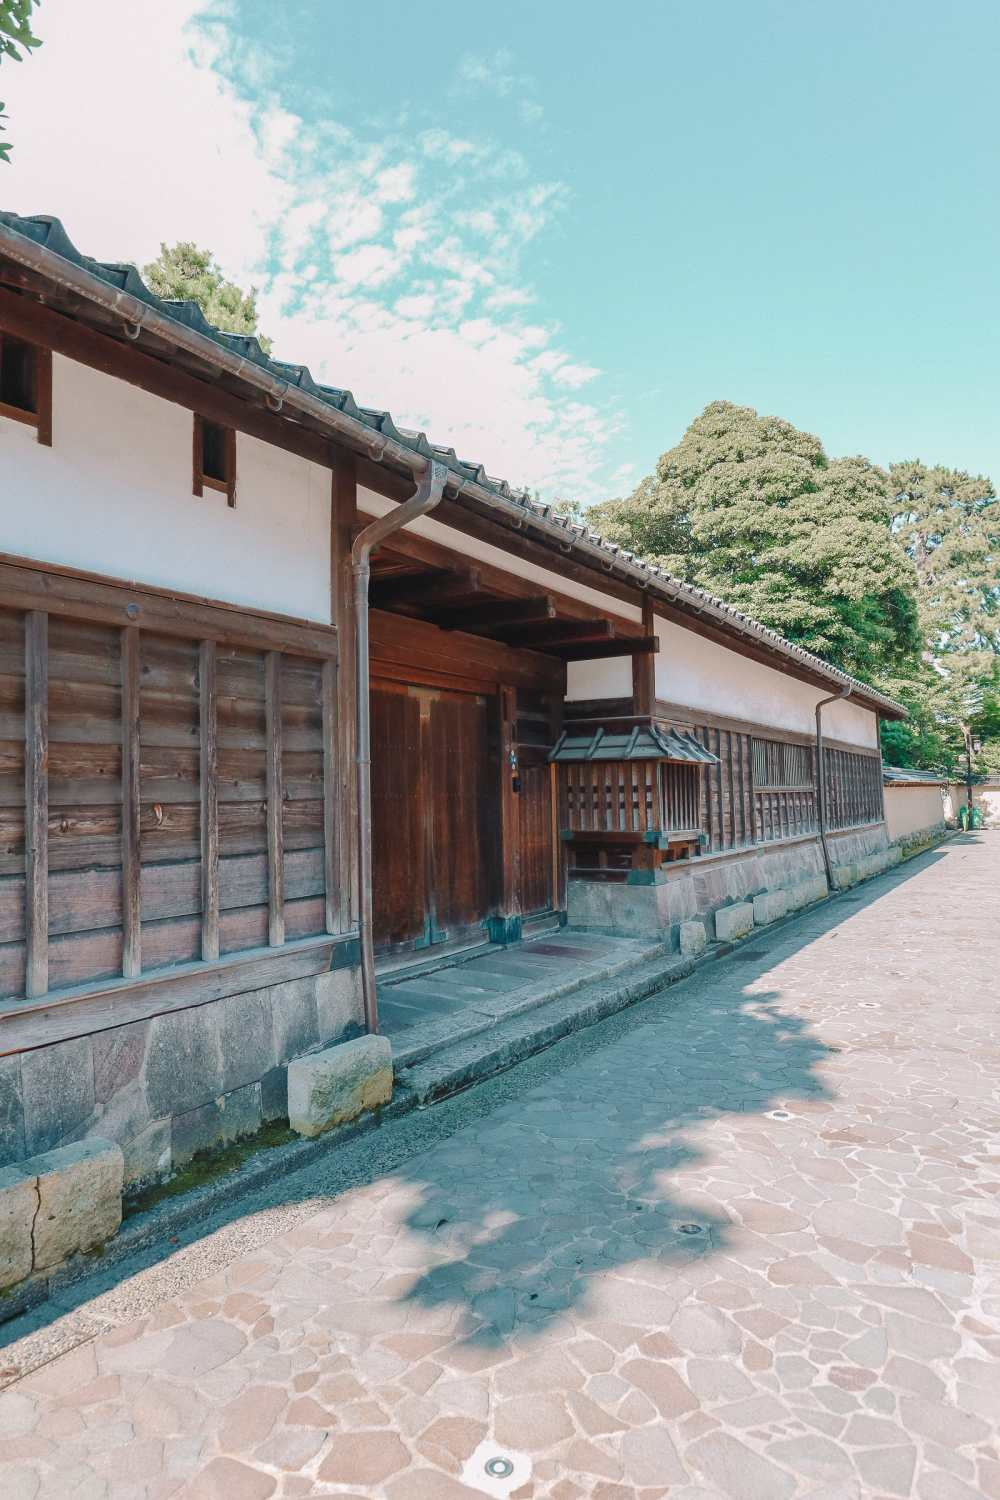 Finding The Samurai District Of Kanazawa and Hakusan City - Japan (63)